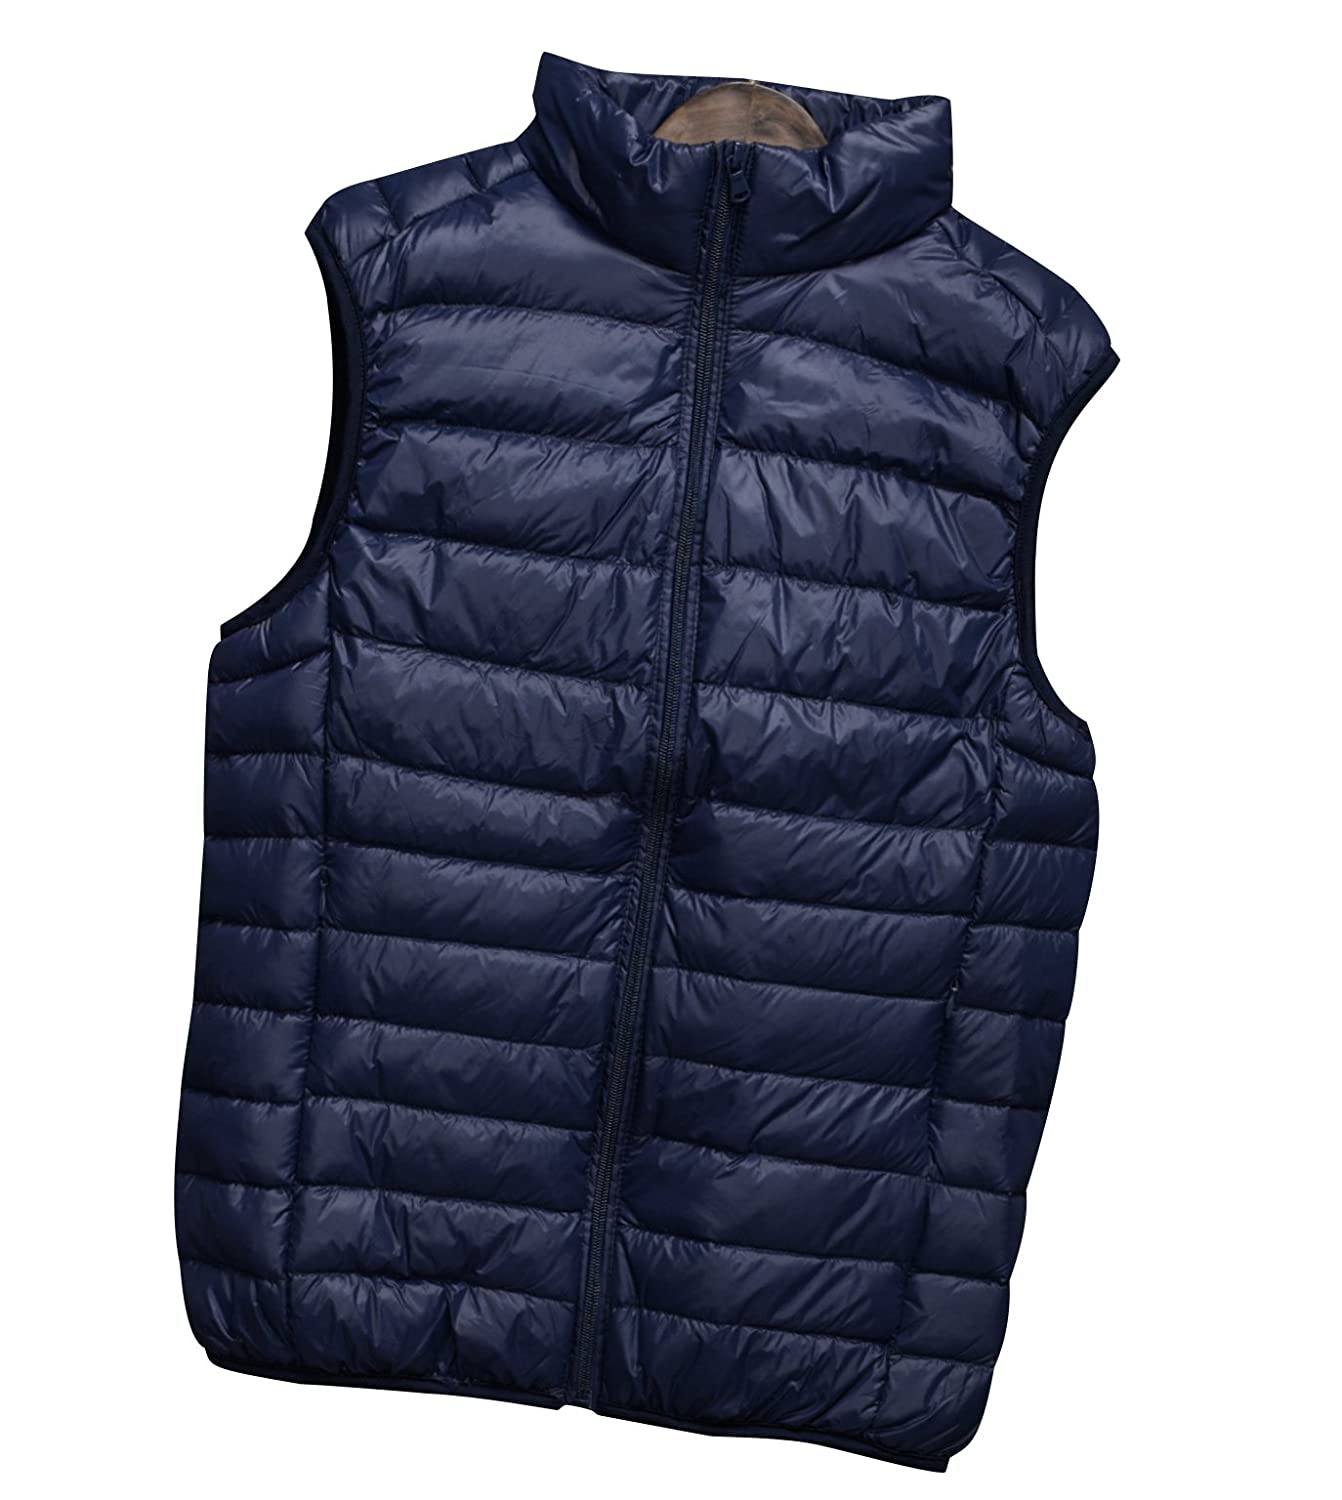 ISSHE Mens Down Gilet Down Puffer Vest Padded Gilet Lightweight Sleeveless Jacket Stand Collar Gilet Bodywarmers Quilted Packable Down Filled Puffa Gilets Jackets Bodywarmer Zipper Pockets Winter